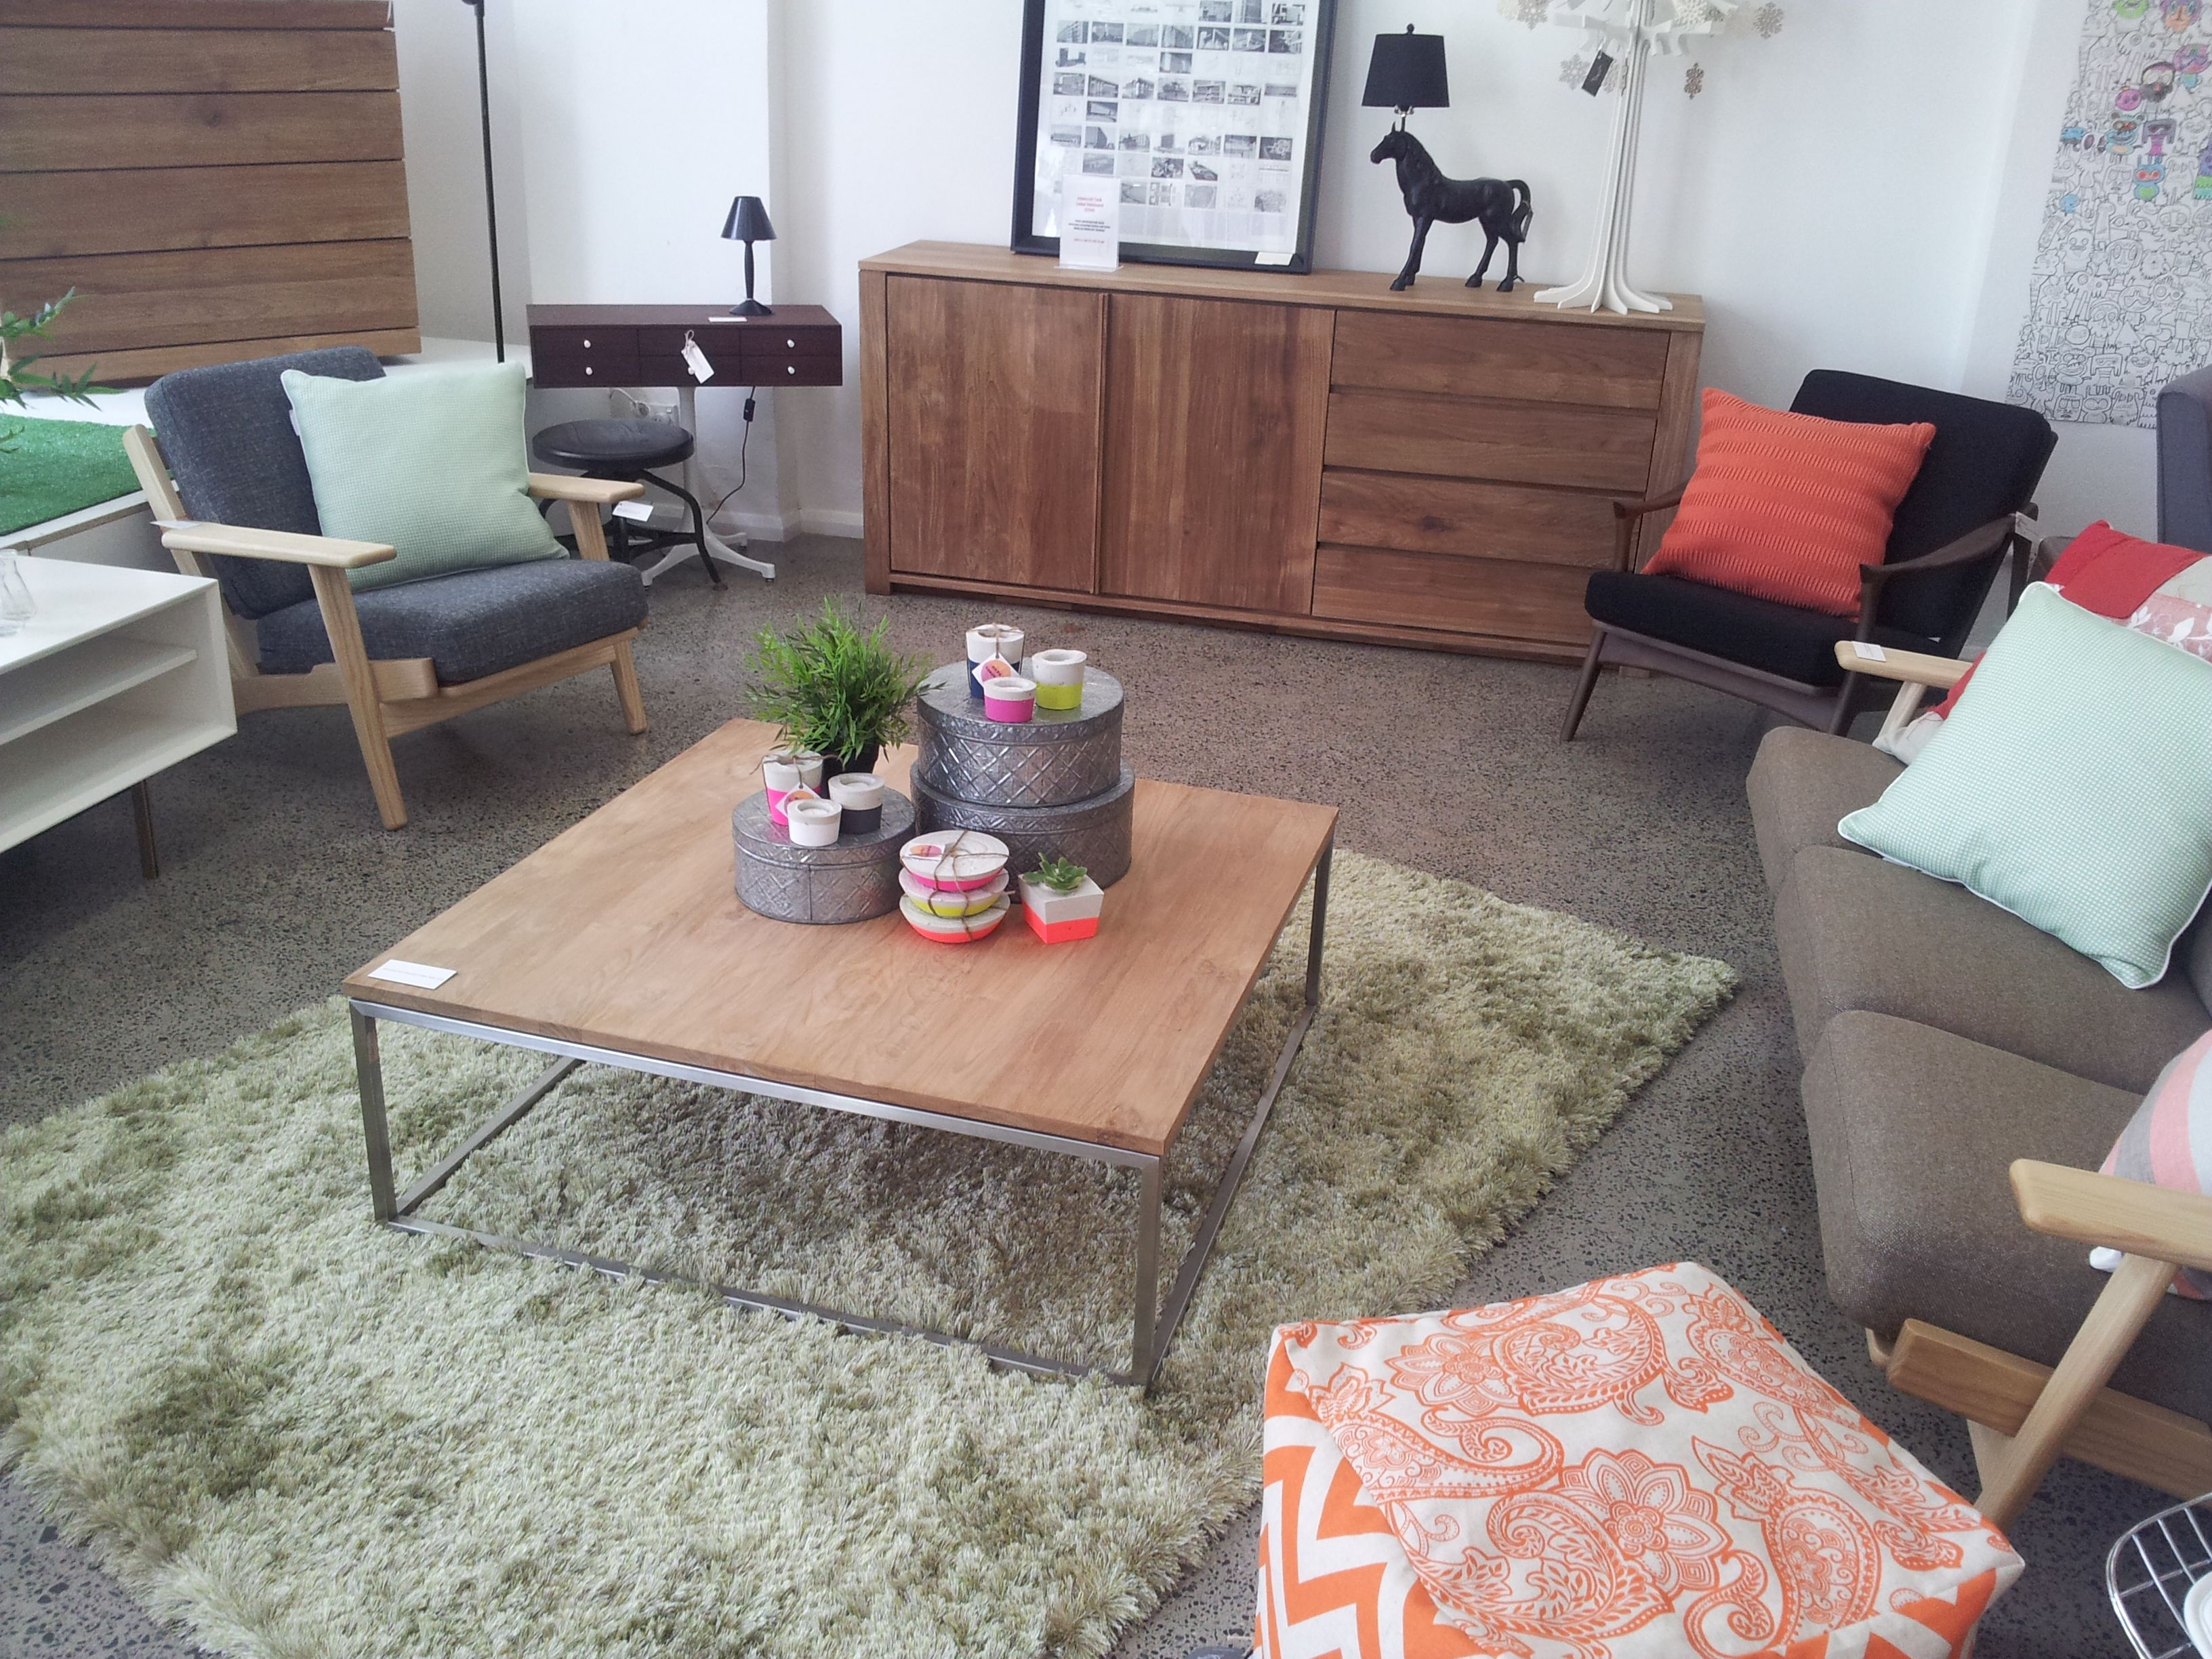 I love the Ethnicraft Teak Essential Coffee Table!